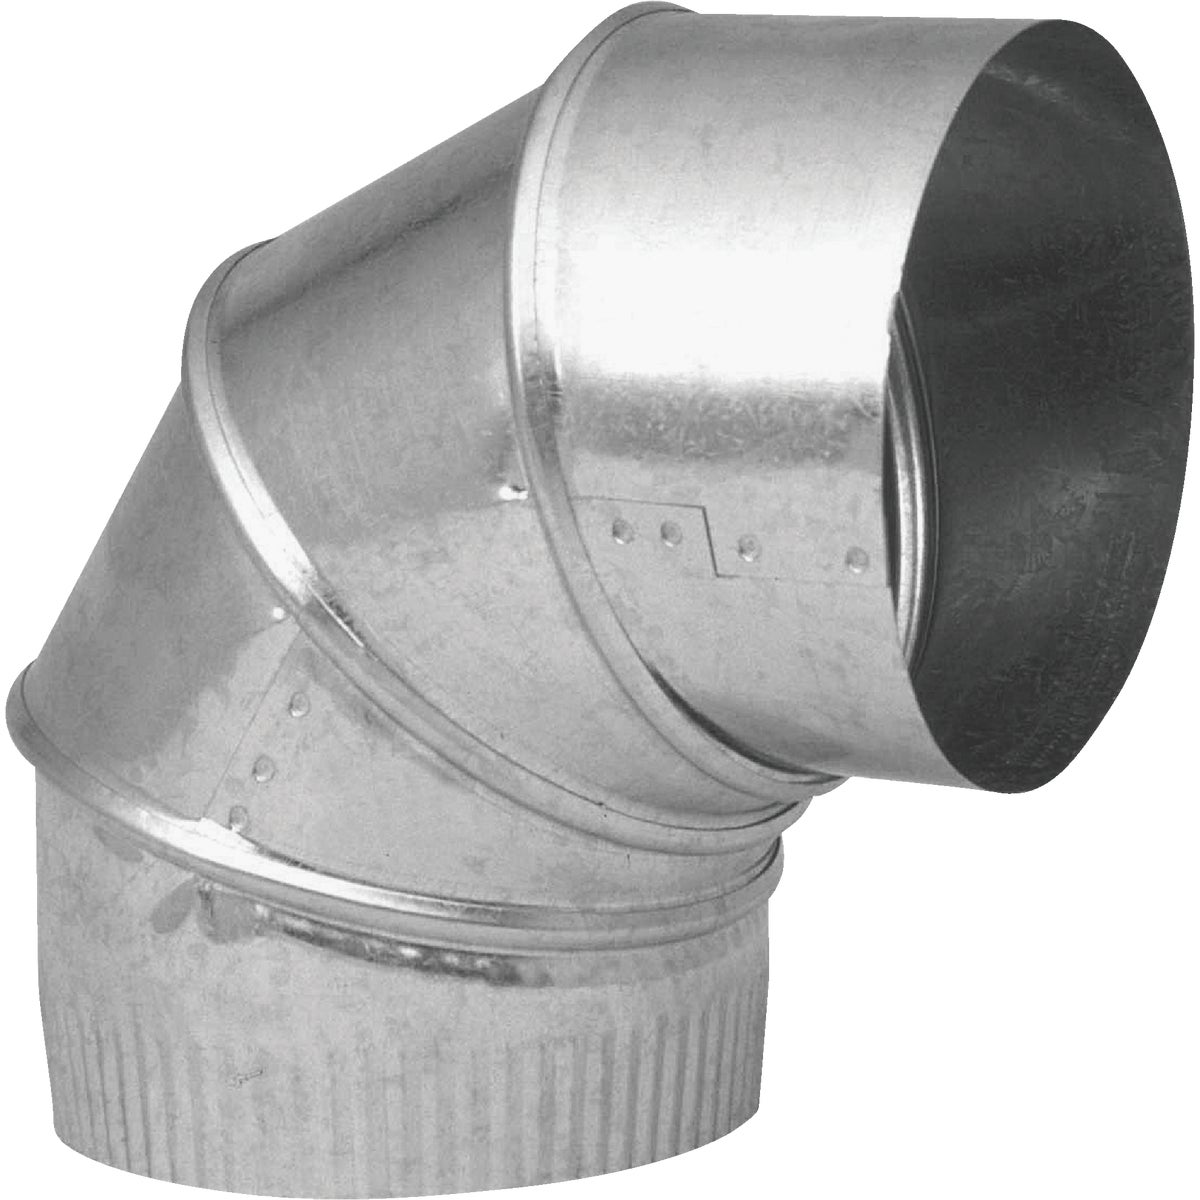 "7"" 30GA GALV ADJ ELBOW - GV1329-C by Imperial Mfg Group"